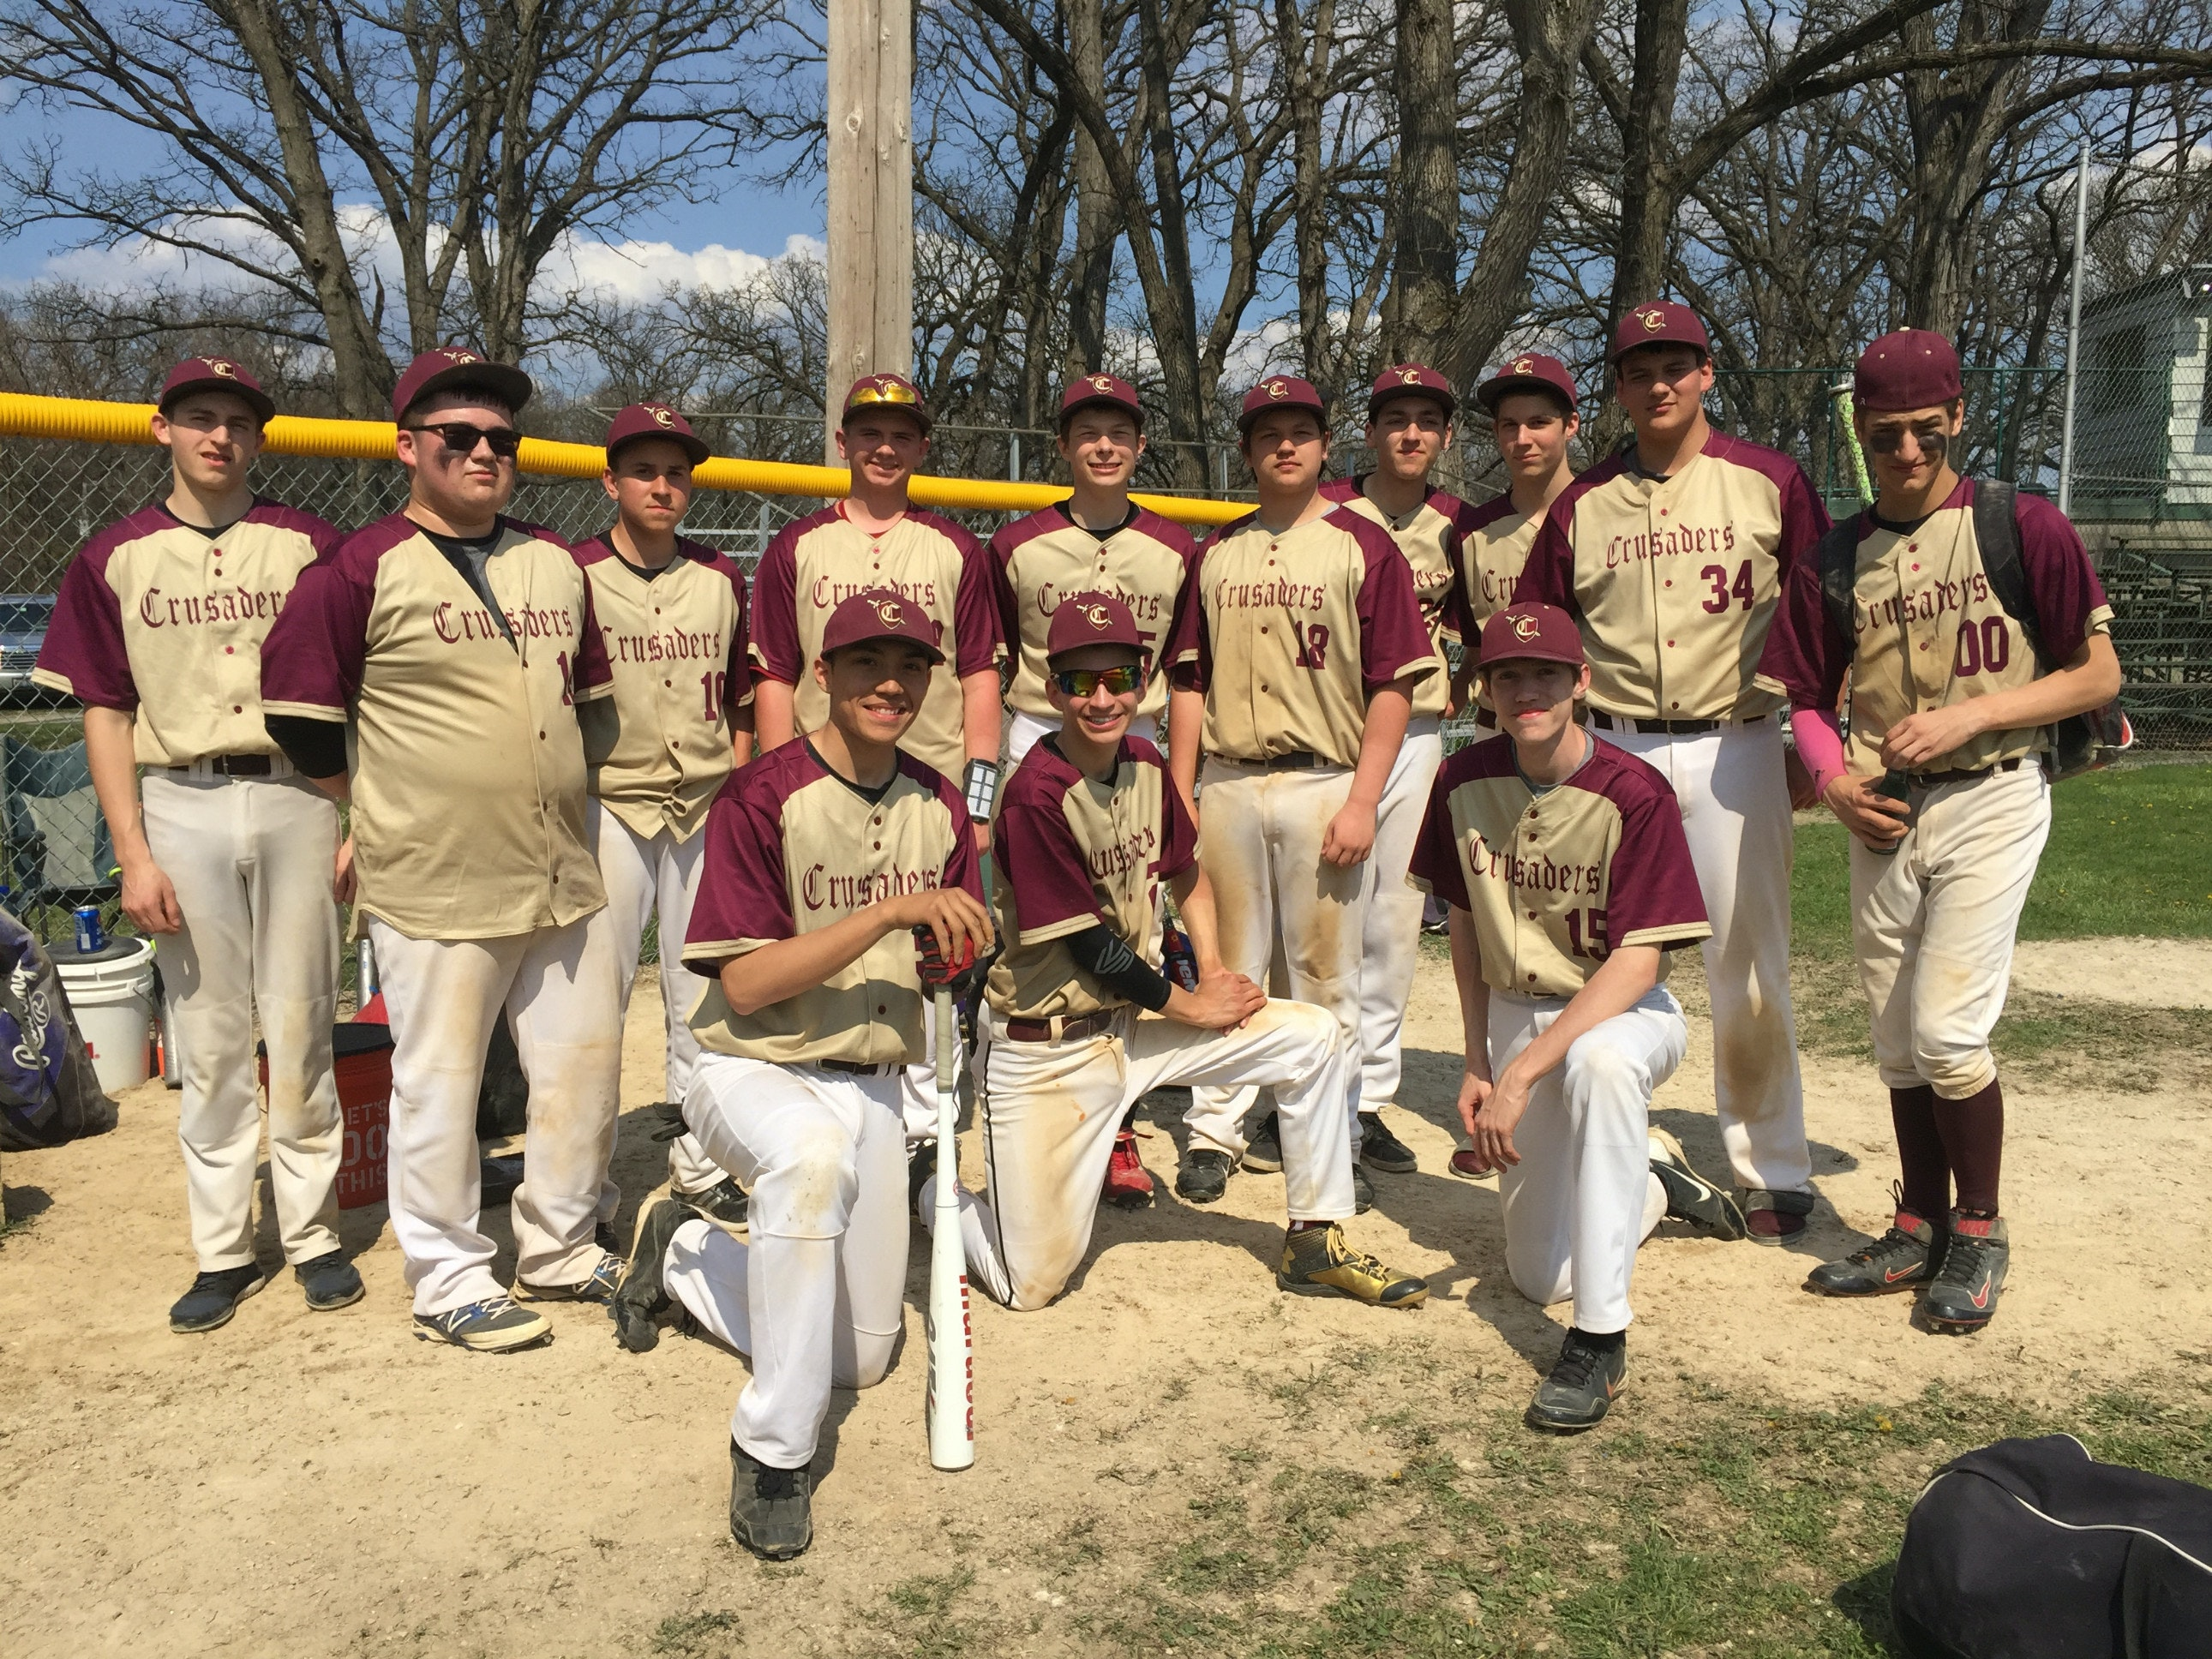 Crossroads Crusaders Homeschool High School Baseball team